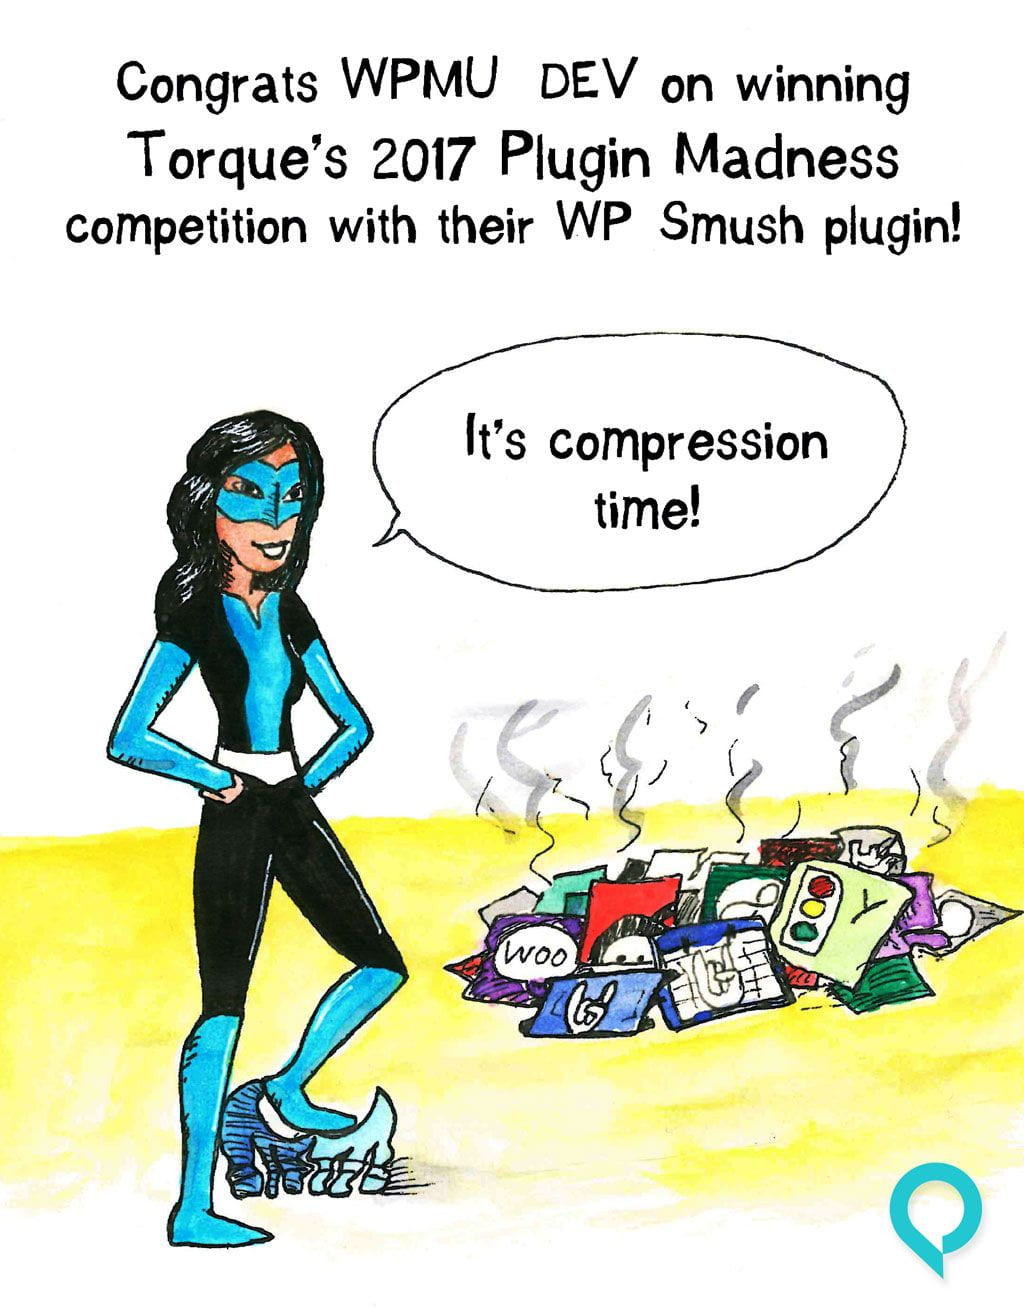 Smush doesn't just crush the competition, it compresses images too!